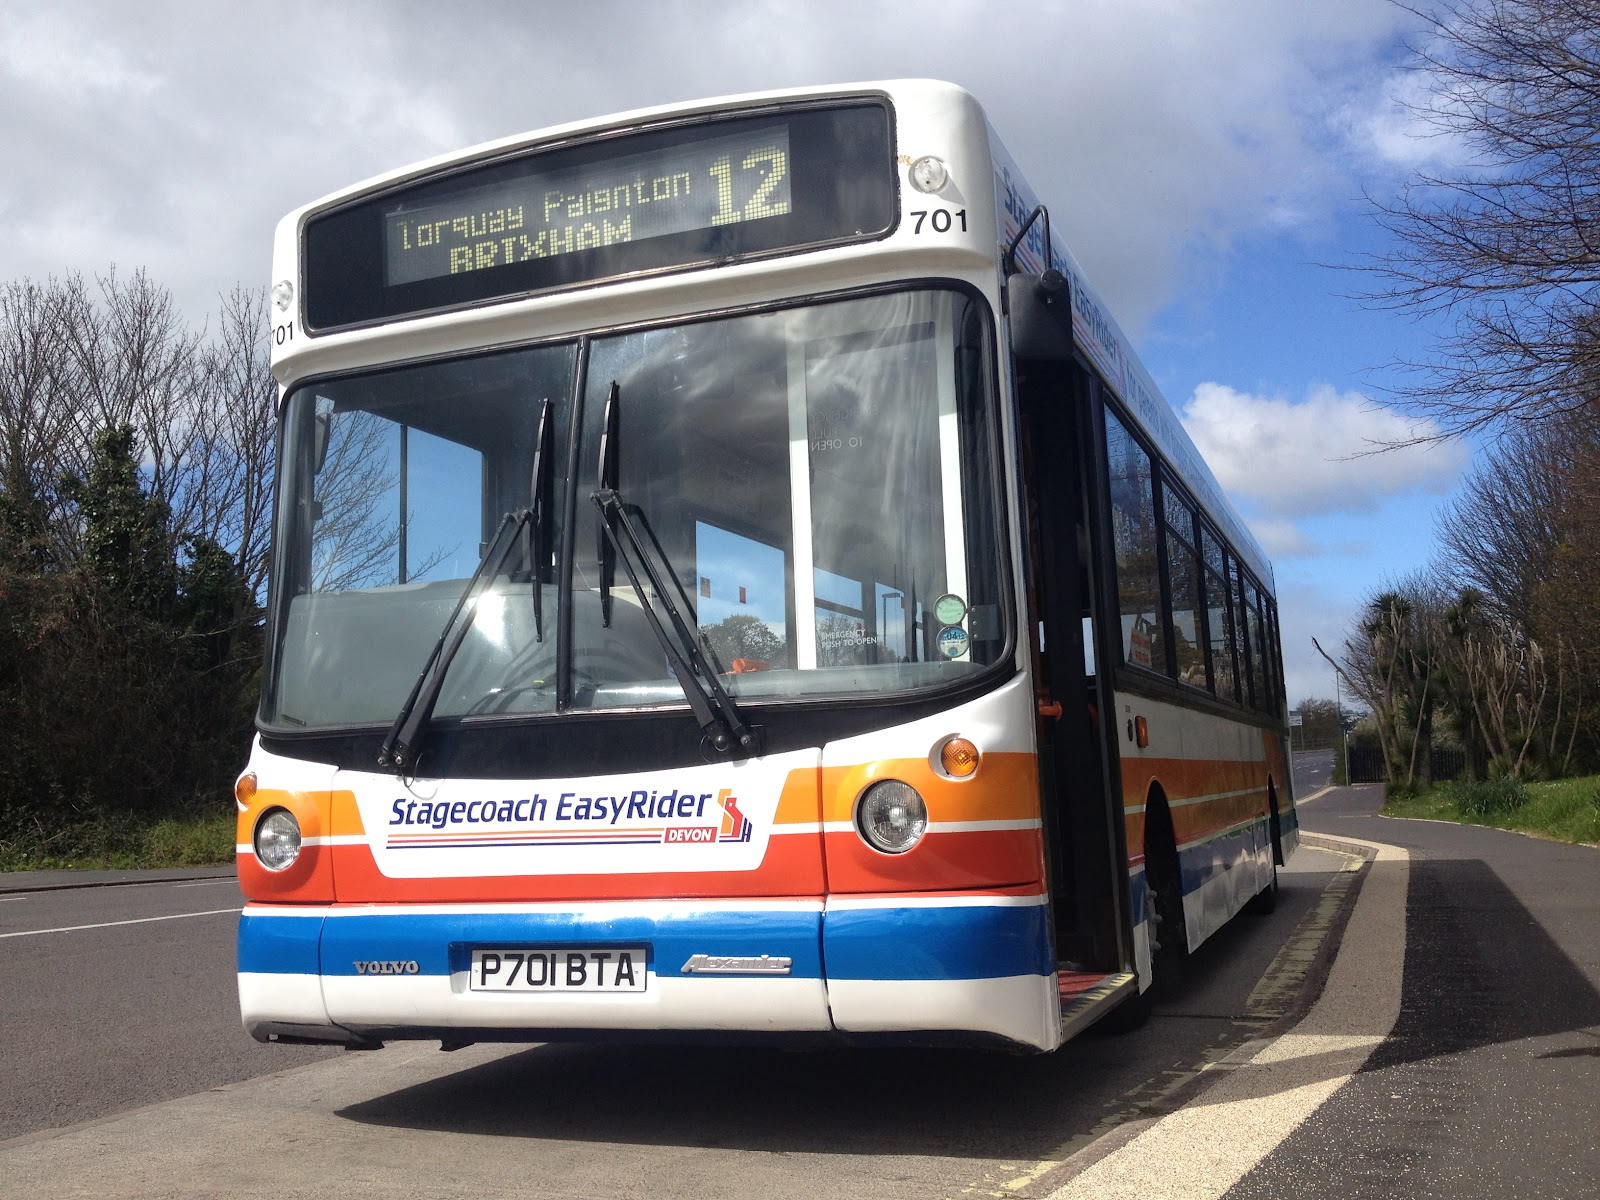 torbay bus routes: happy 15th birthday, 701! :-)